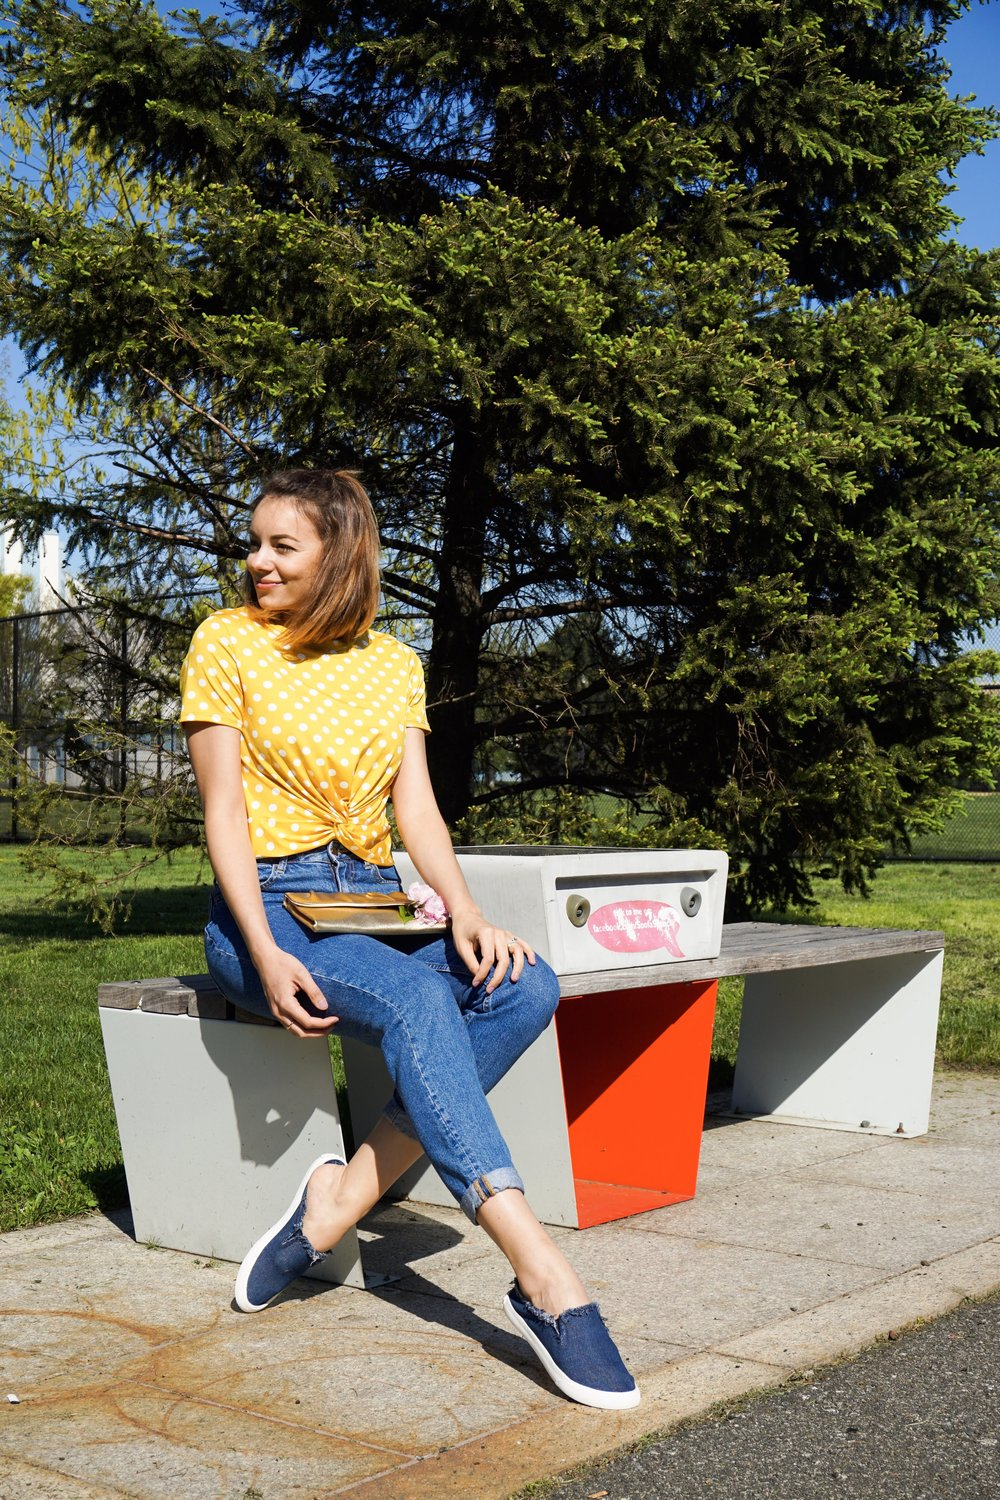 A girl sitting on the bench in the park, wearing a yellow crop top, blue jeans, and denim slips ons.